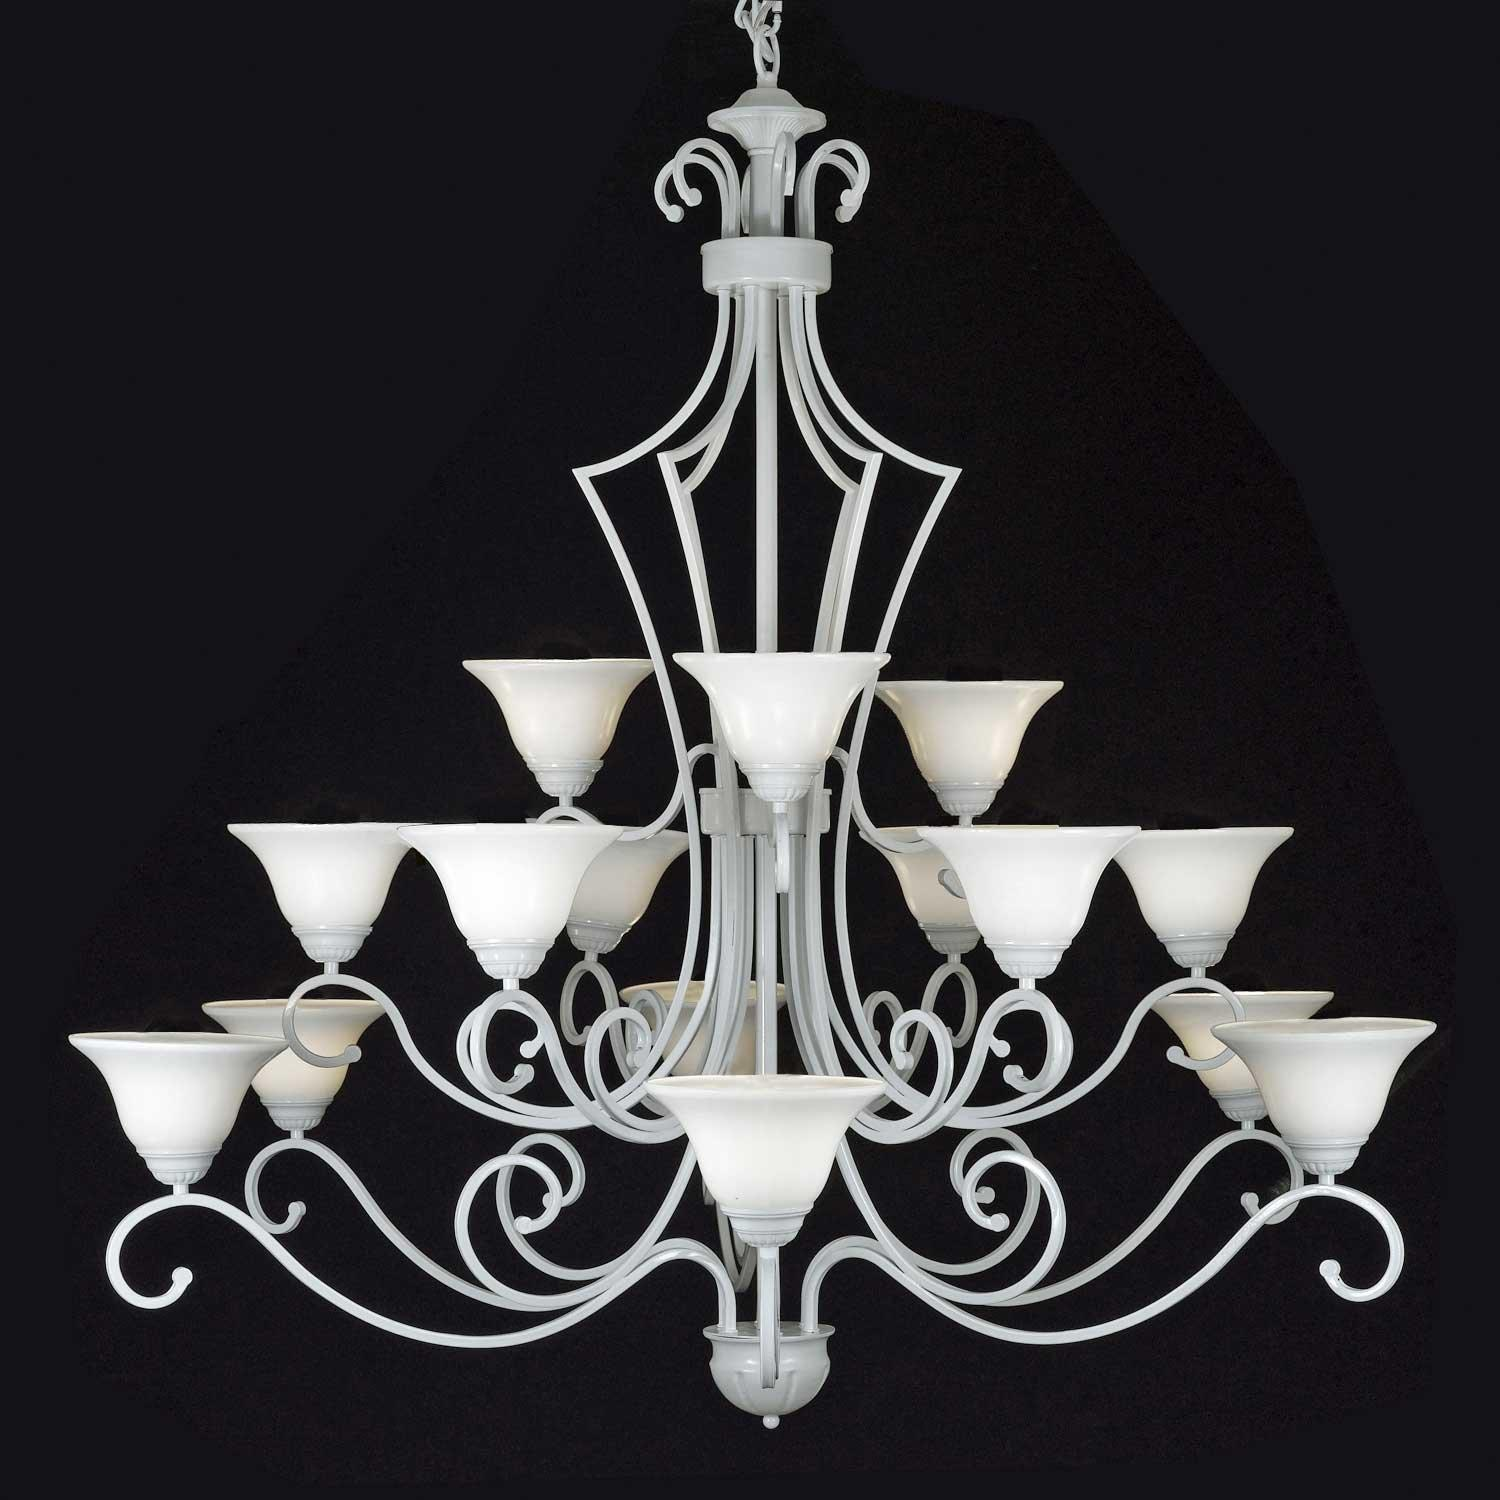 Entryway Foyer Wrought Iron Chandelier Lighting H51 x W49